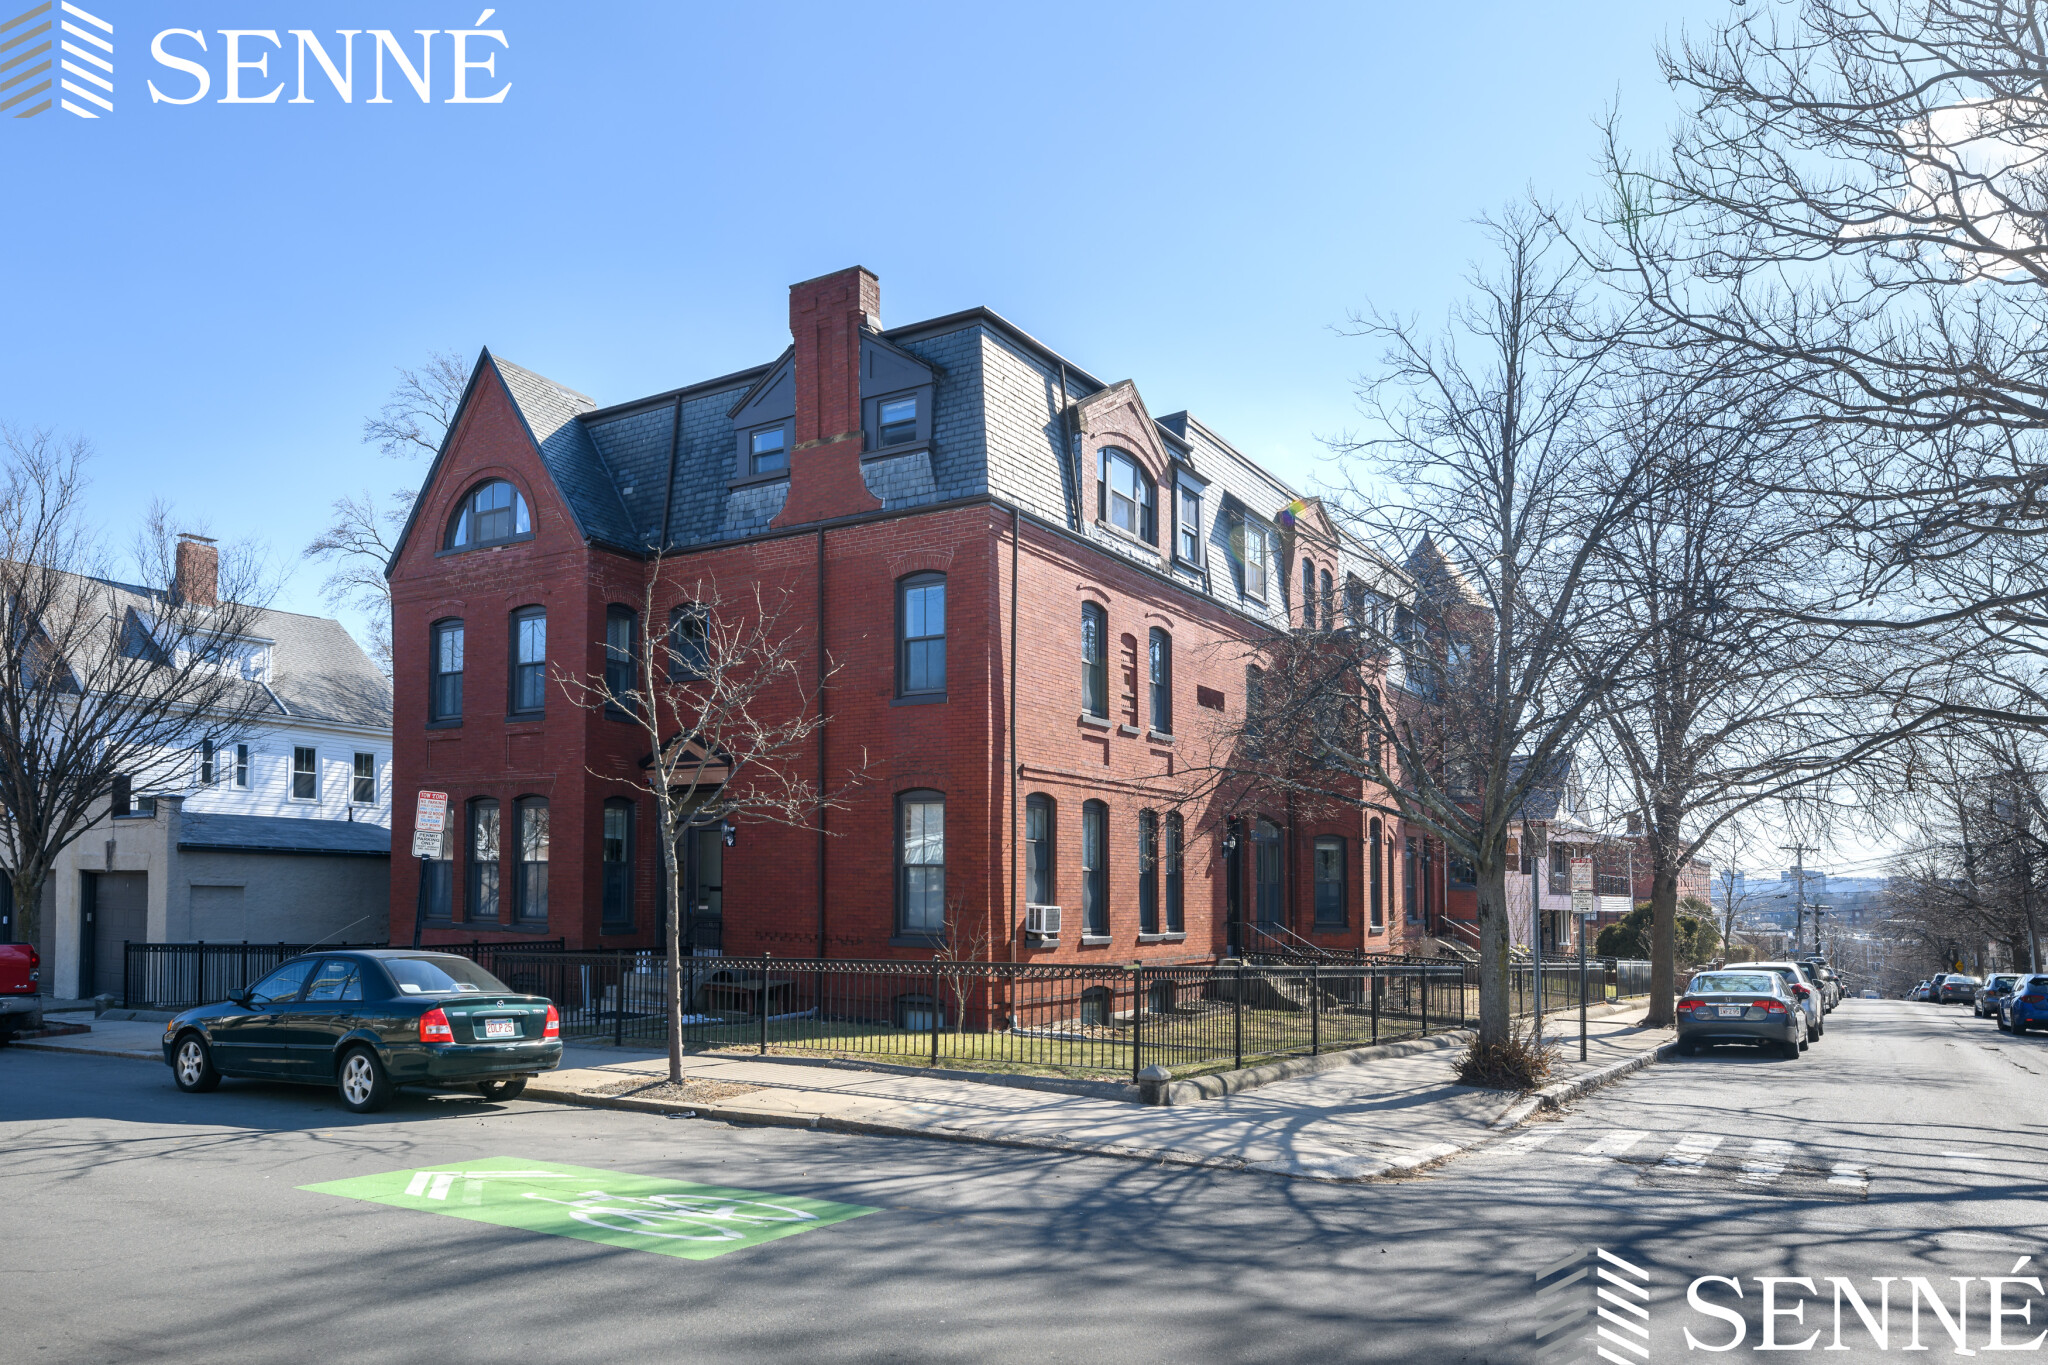 1 Bed, 1 Bath apartment in Somerville for $1,750